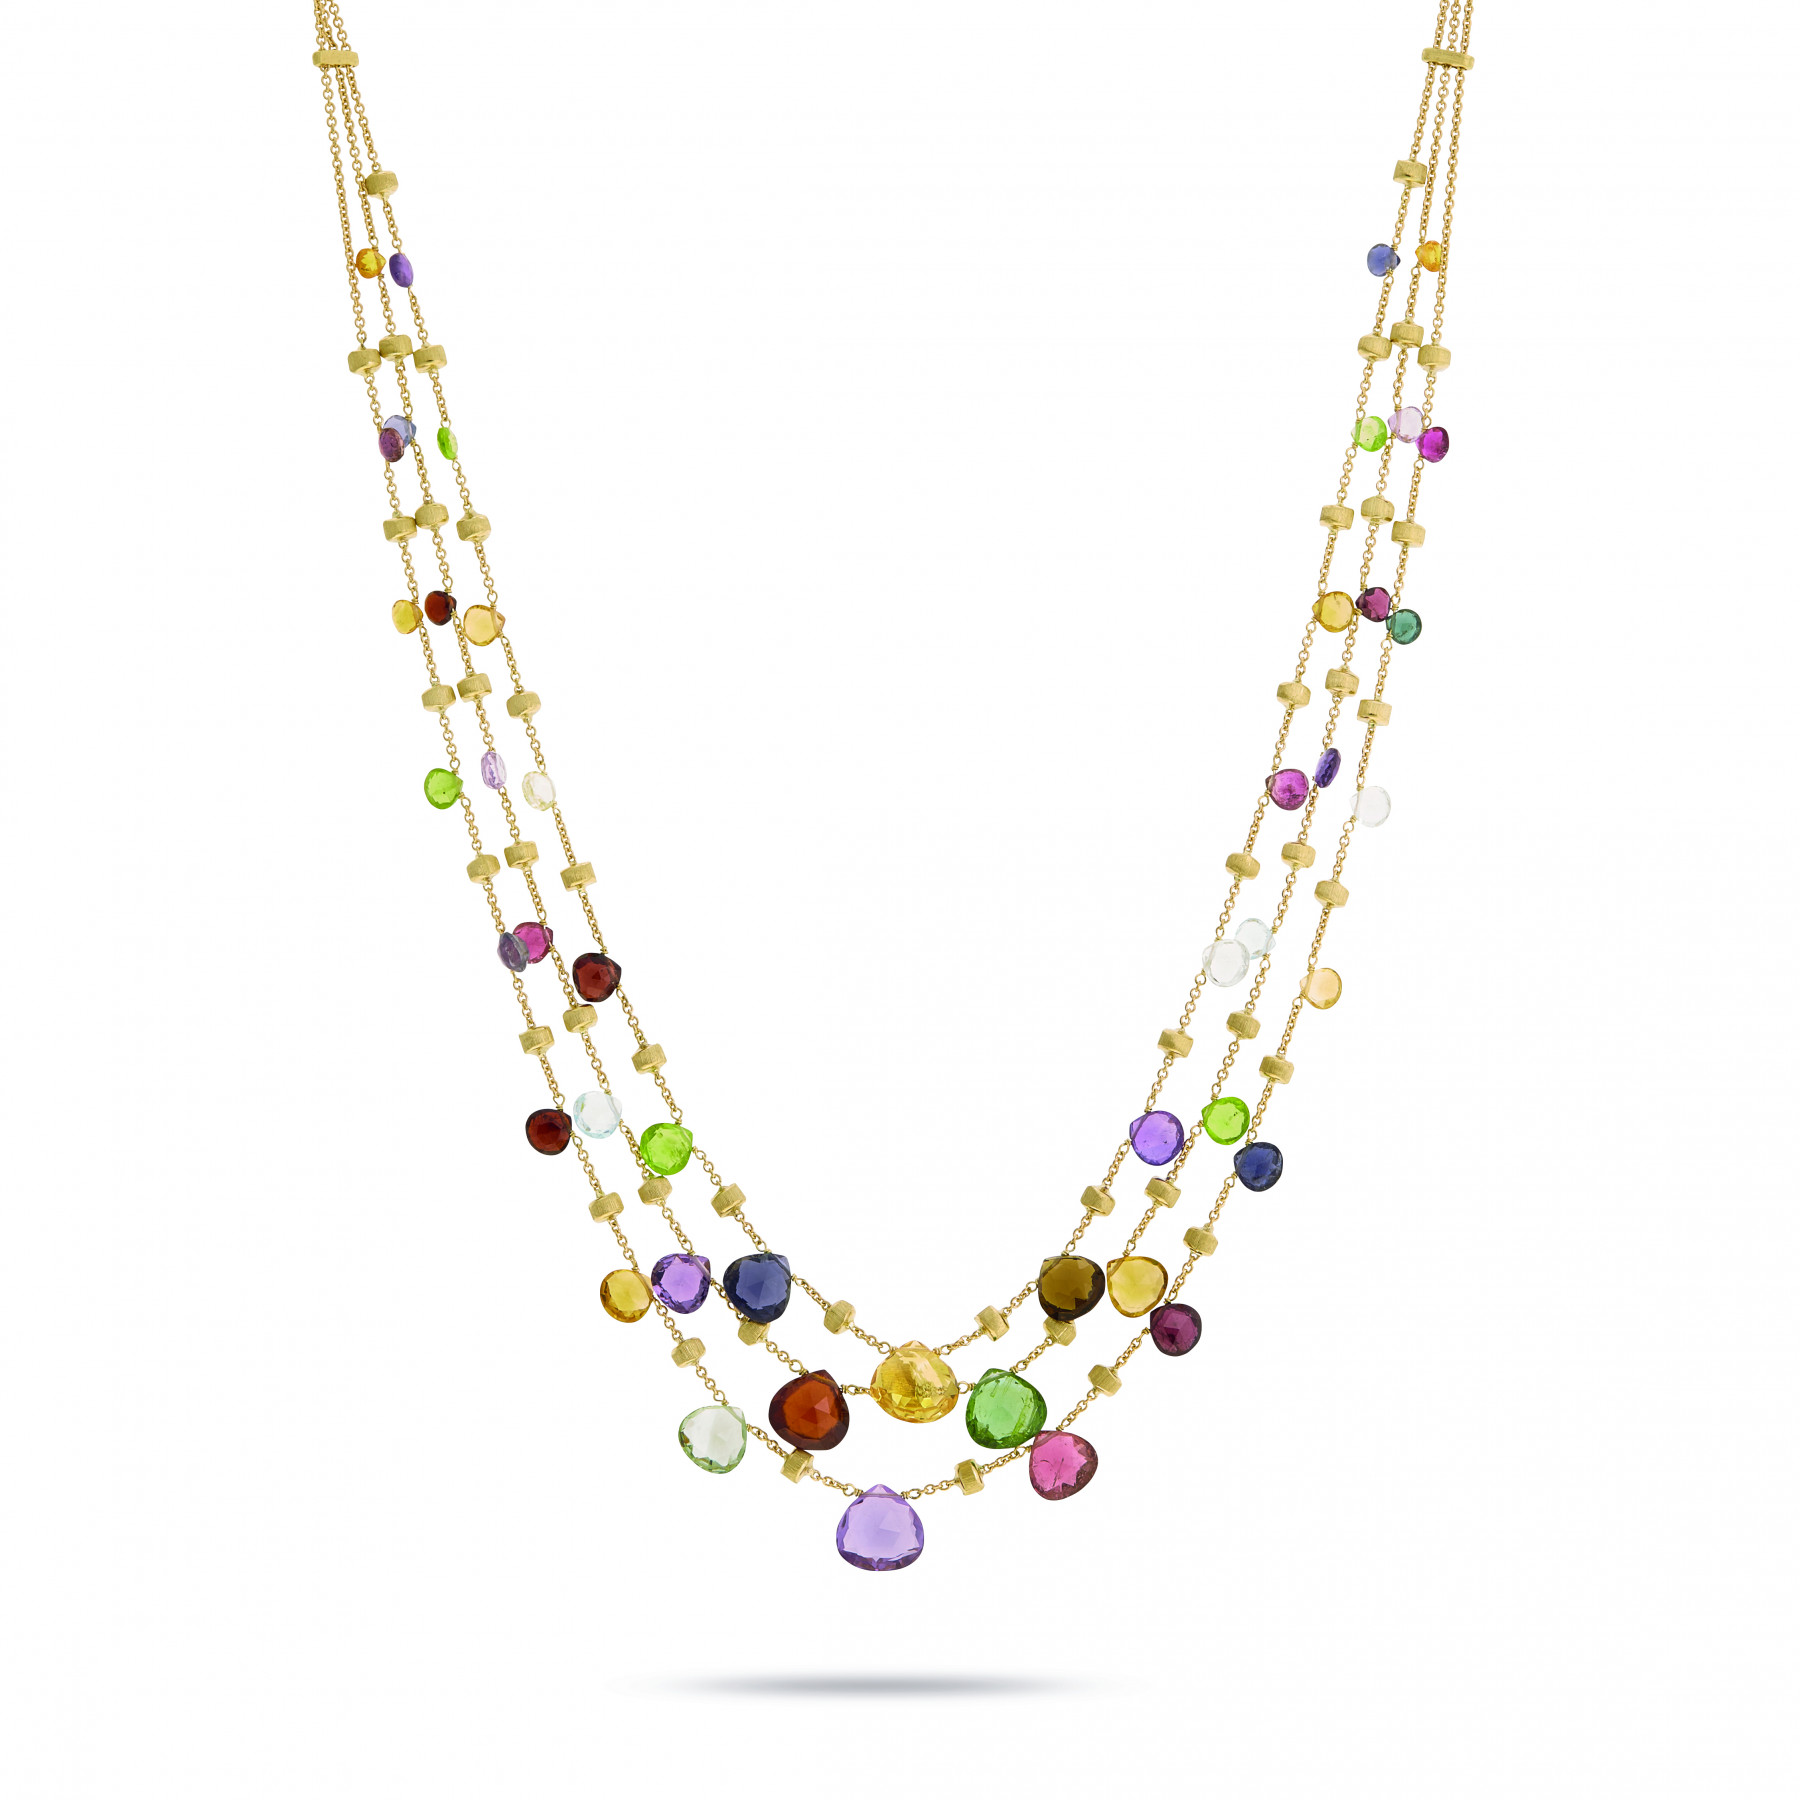 Marco Bicego Paradise Gemstone Layered Necklace in 18K Gold